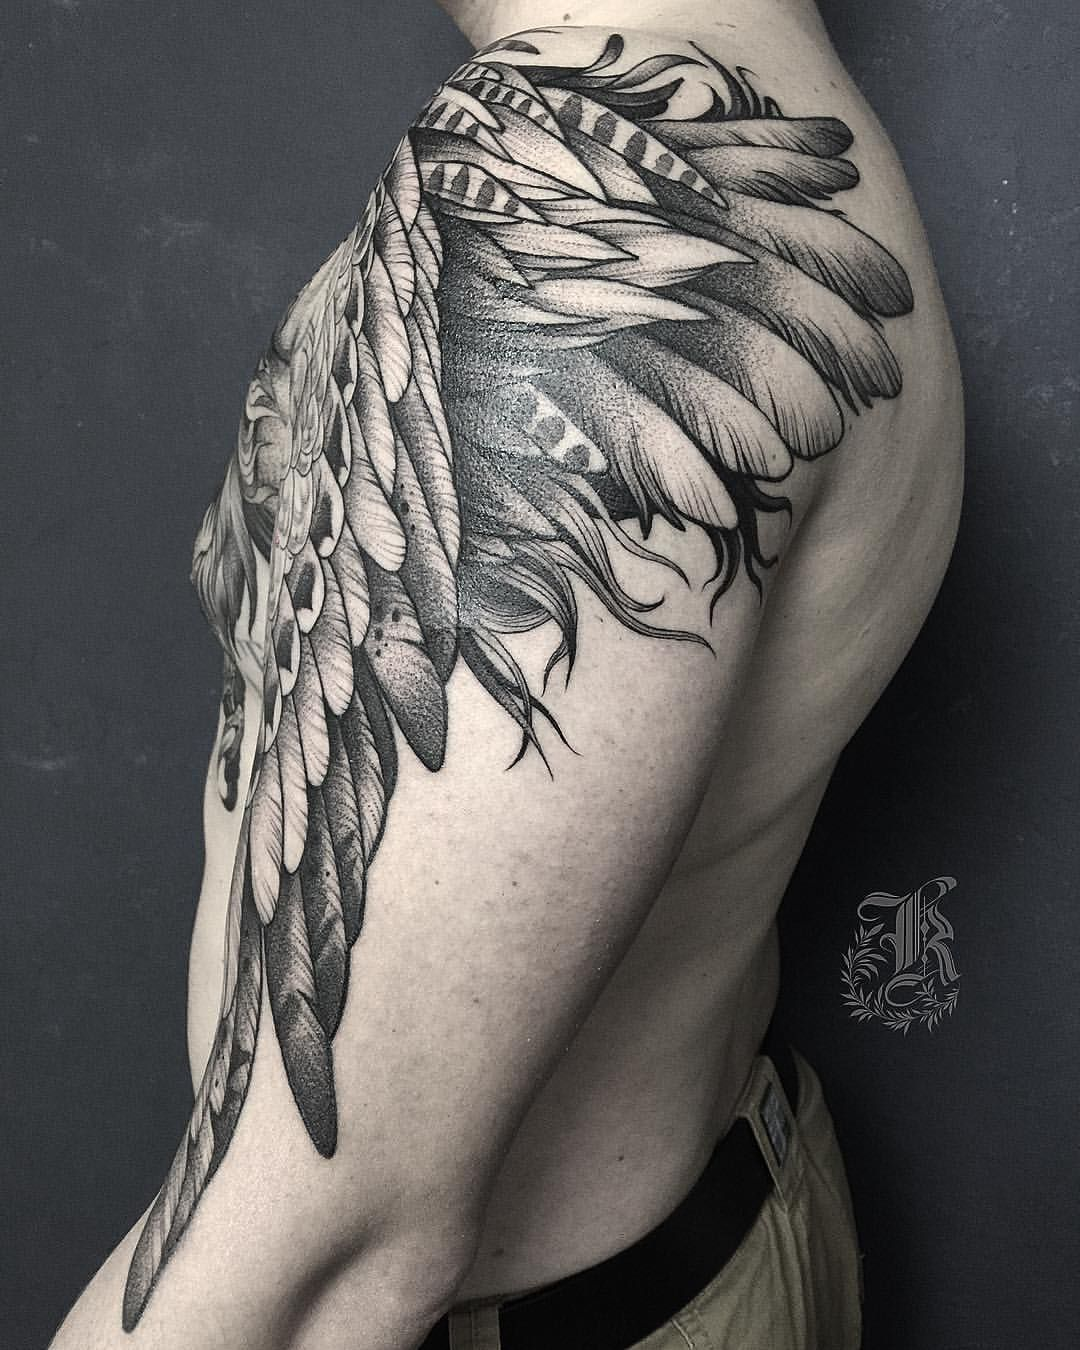 Wing and feathers tattoo by kristina darmaeva sheis on instagram